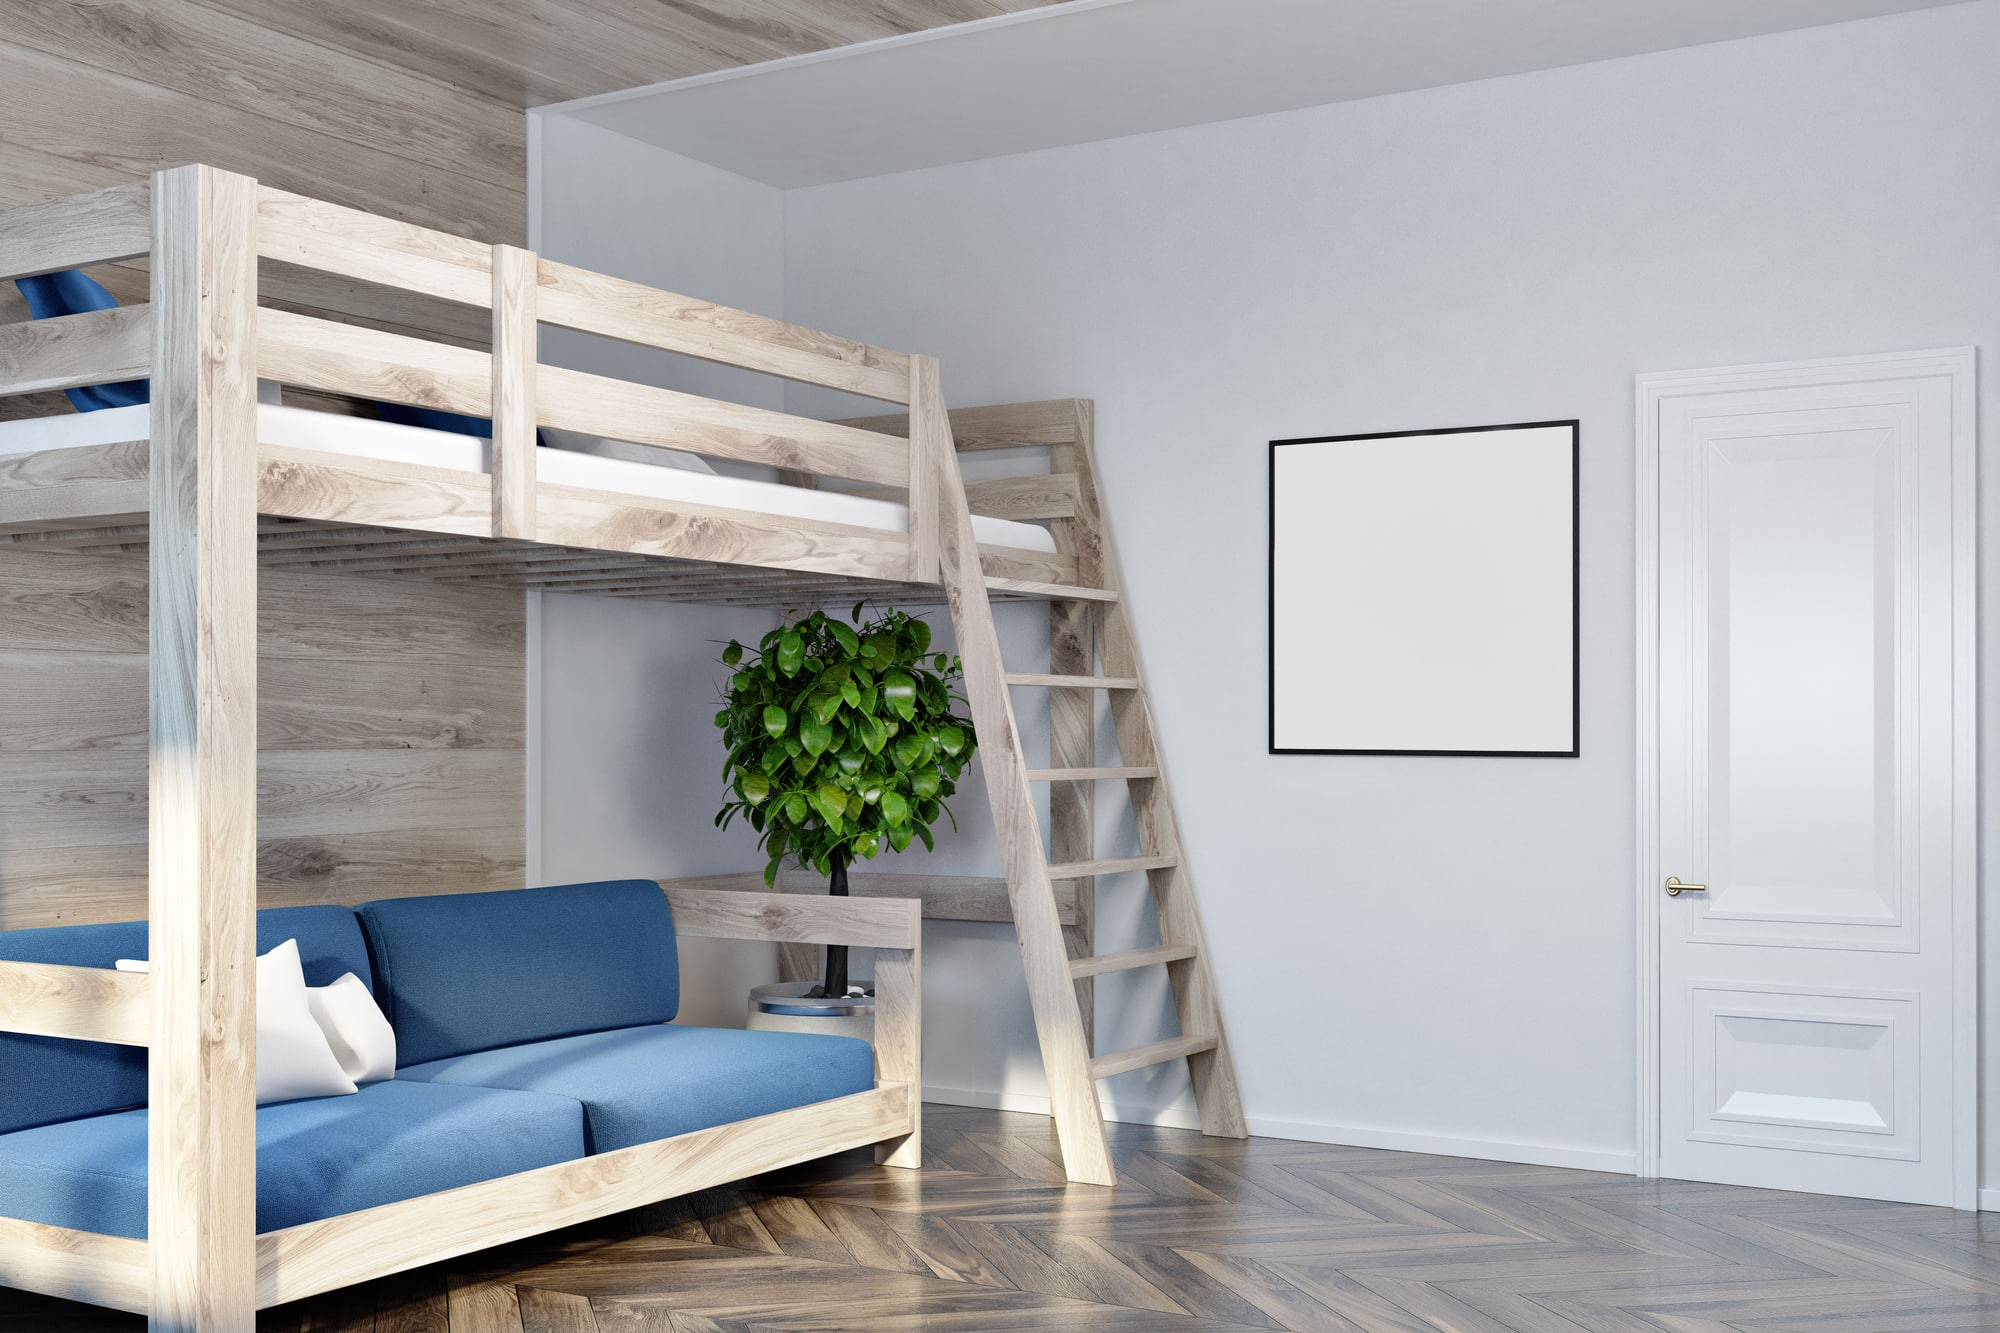 Prime The Best Loft Beds For Kids And Adults In 2019 Top 10 Reviewed Ibusinesslaw Wood Chair Design Ideas Ibusinesslaworg